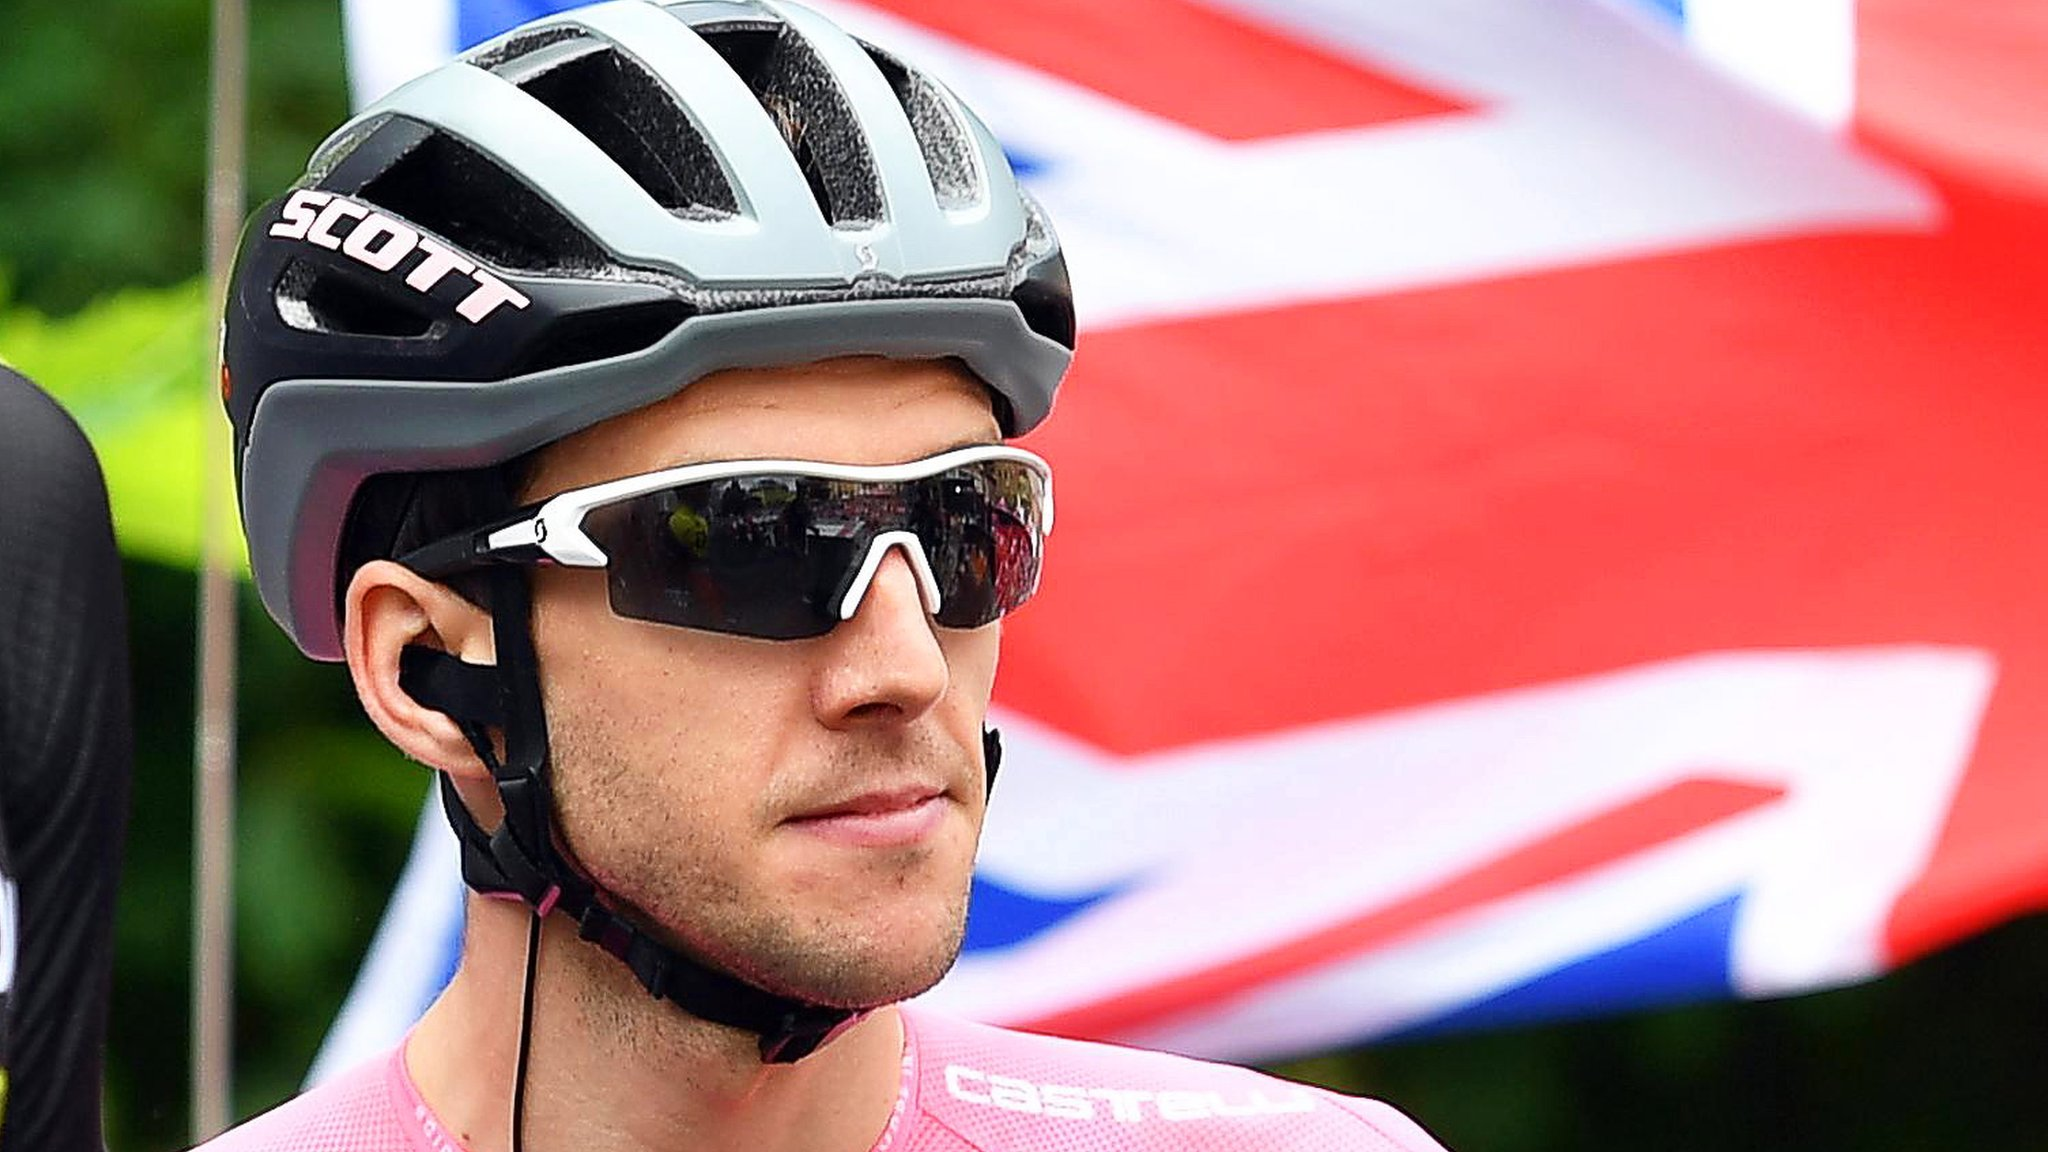 Yates set to lose Giro d'Italia lead as Froome attacks